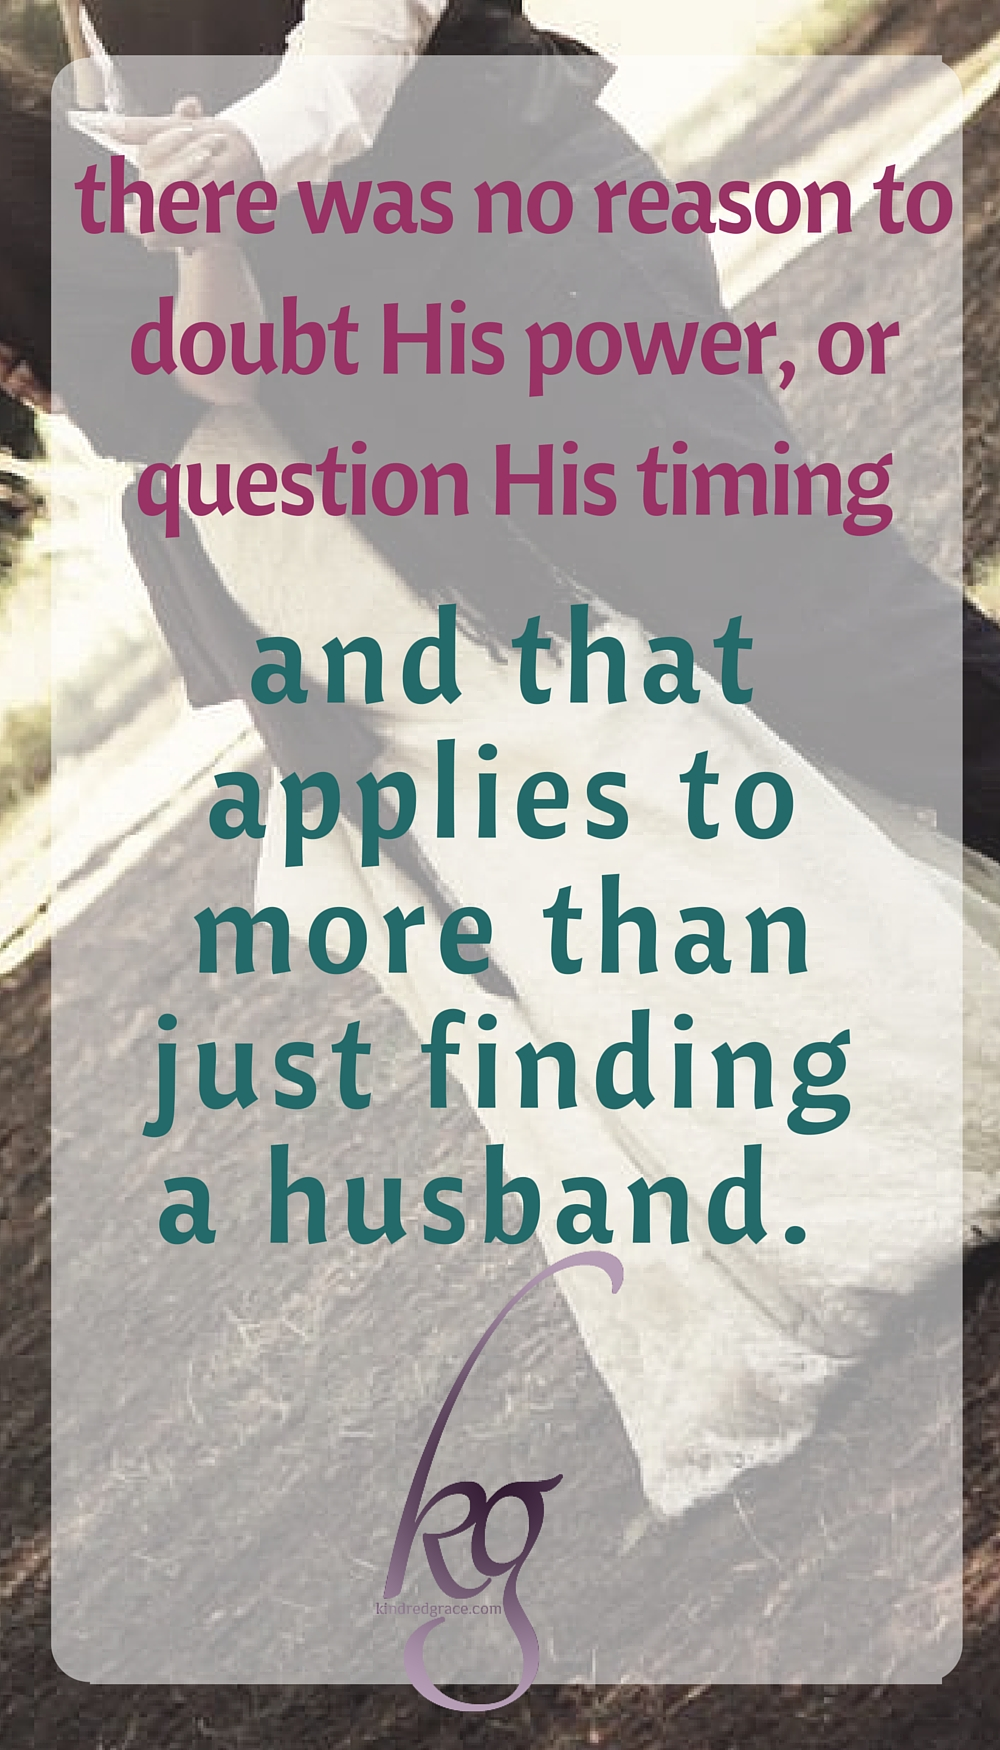 There was no reason to doubt His power or question His timing. And that applies to more than just finding a husband.